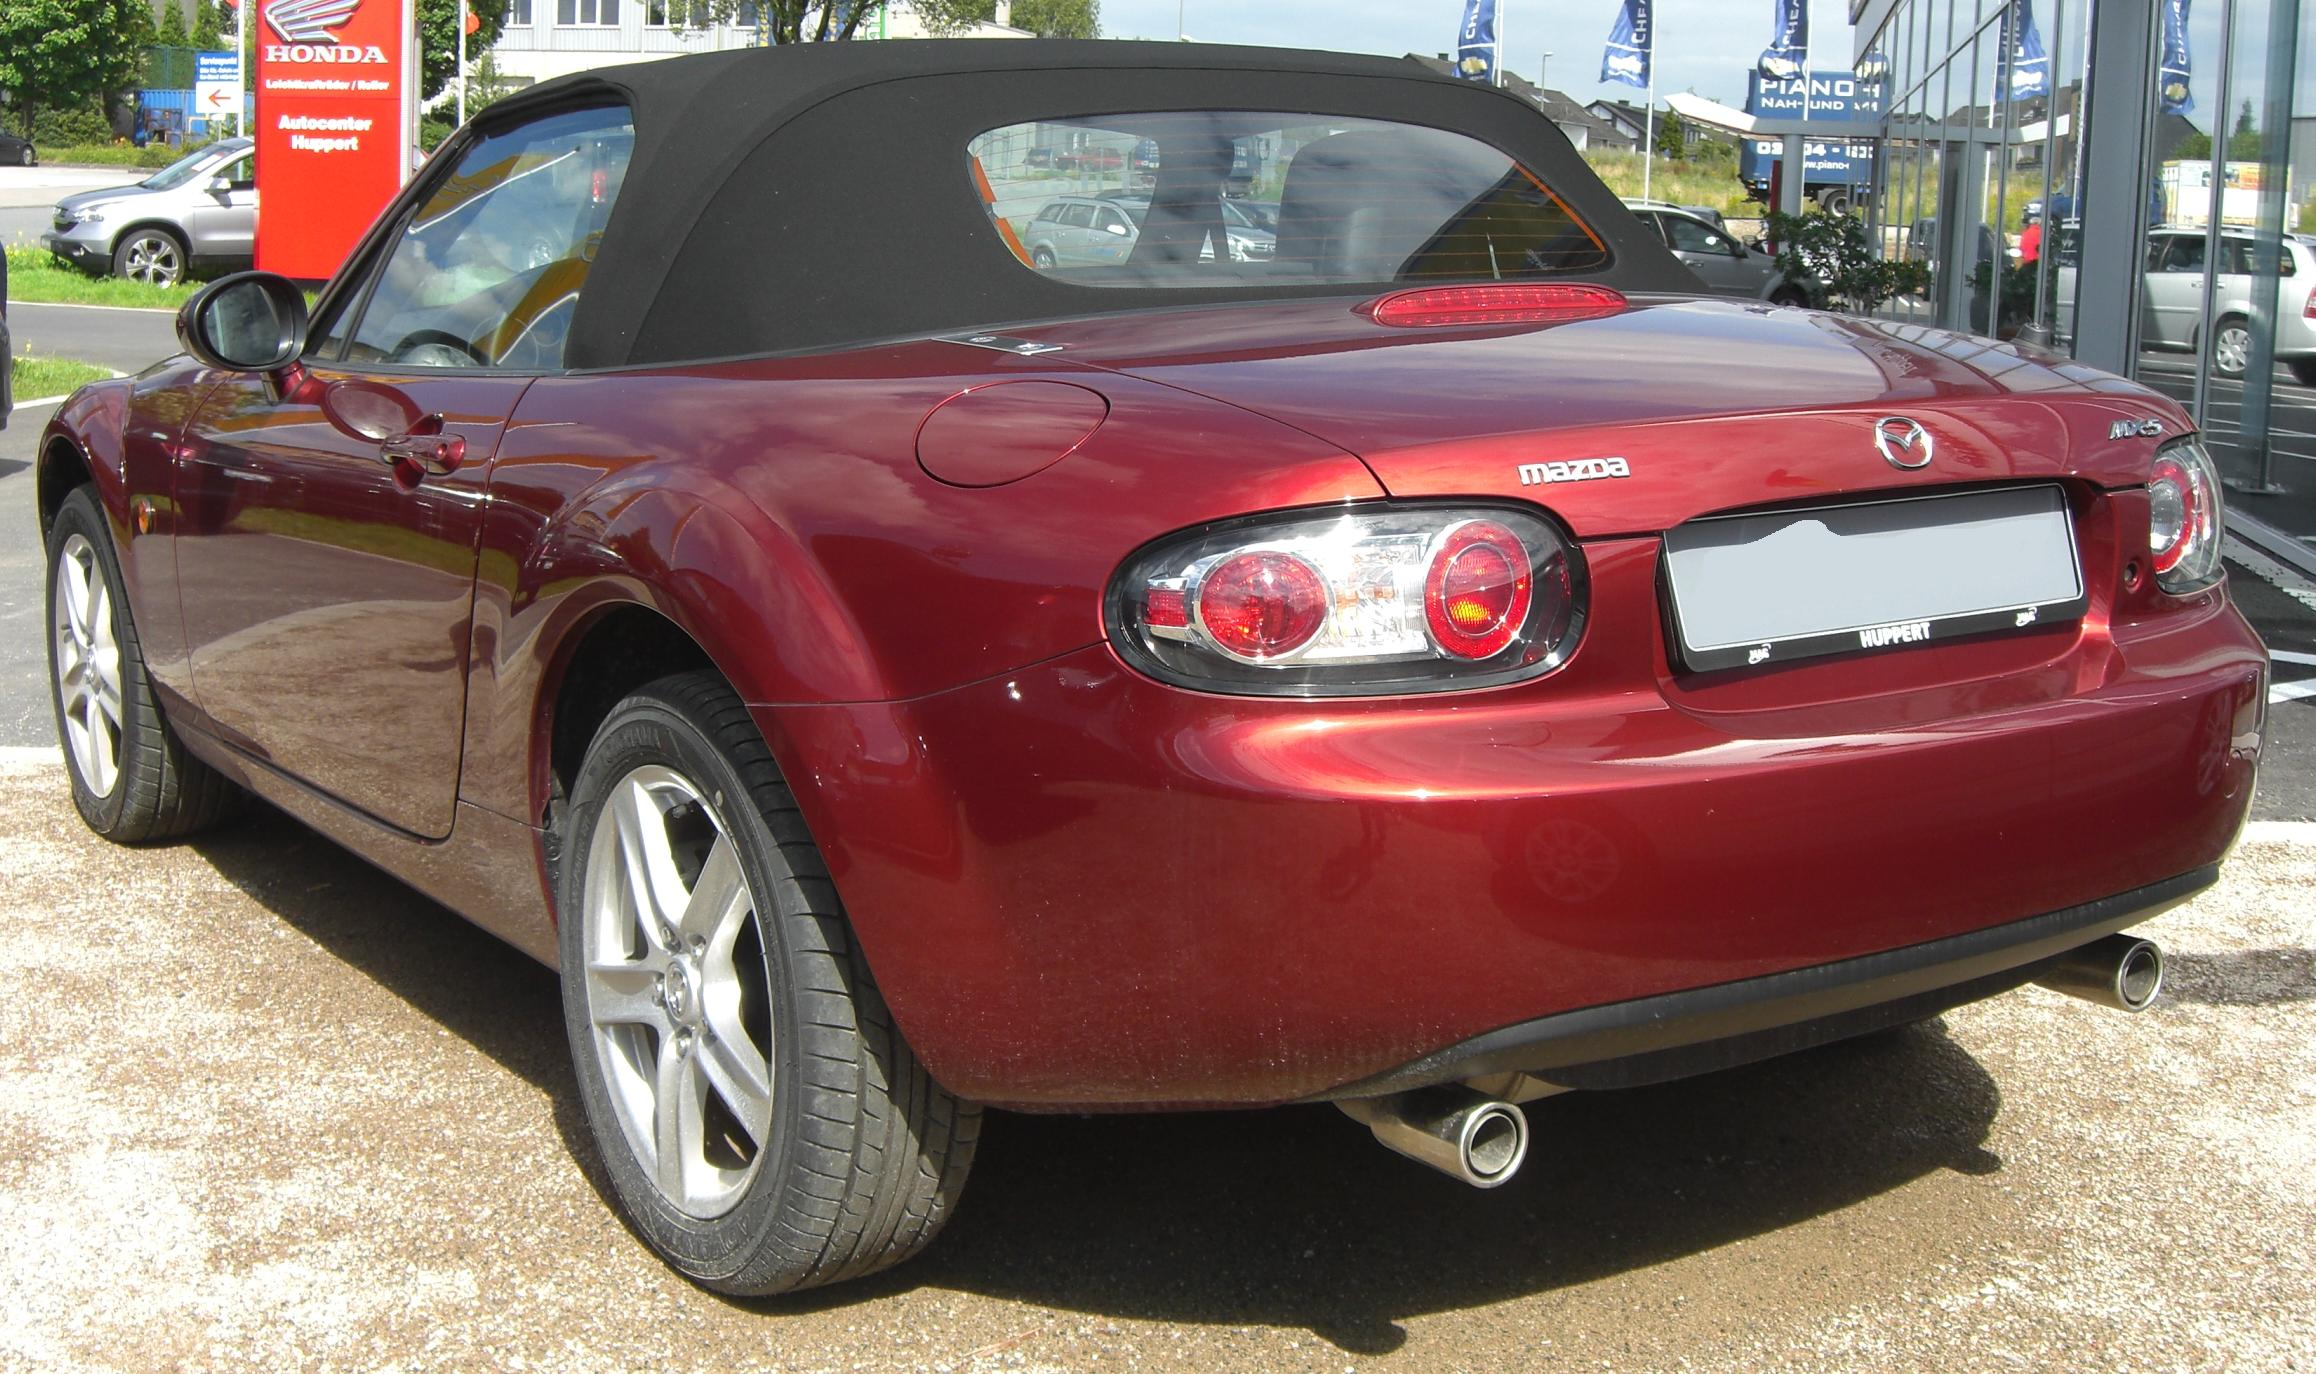 file mazda mx 5 nc wikimedia commons. Black Bedroom Furniture Sets. Home Design Ideas